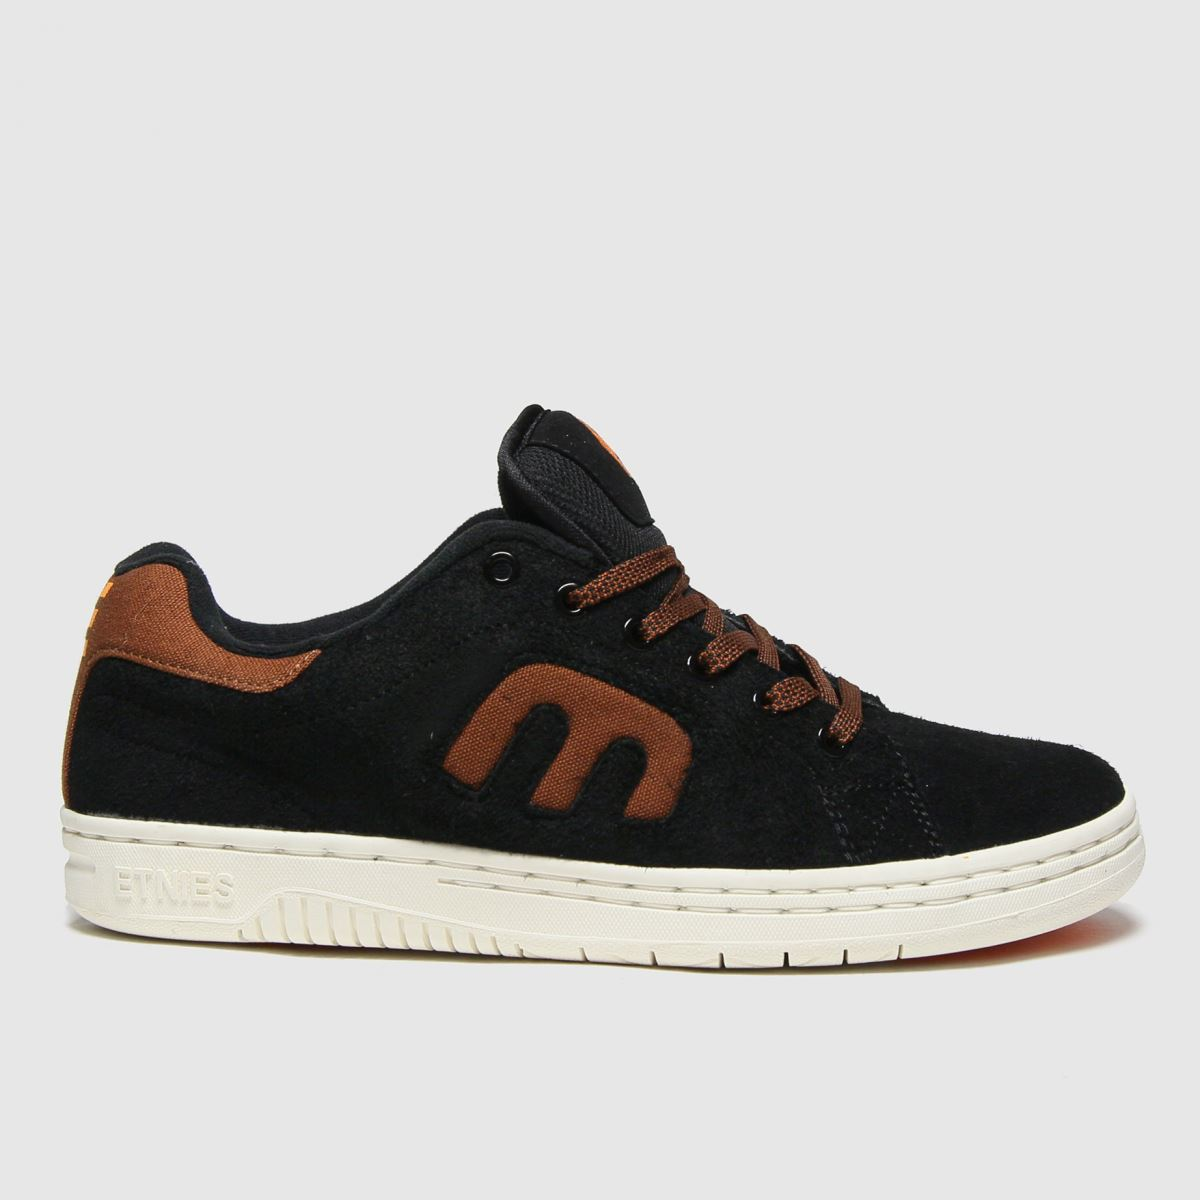 Etnies Black Calli-cut Trainers